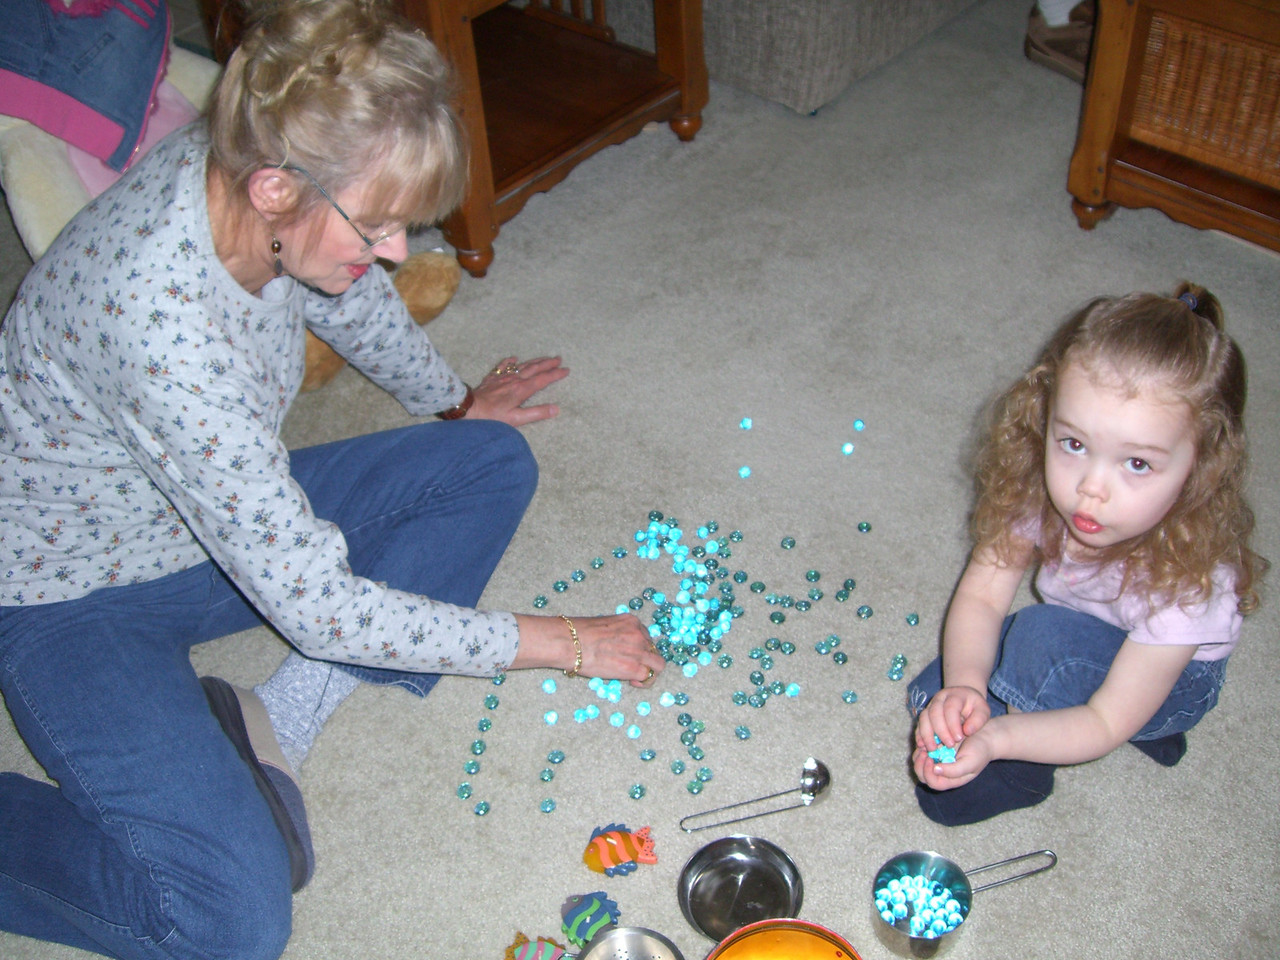 Making snakes (curvy lines) out of marbles with Grandmama.